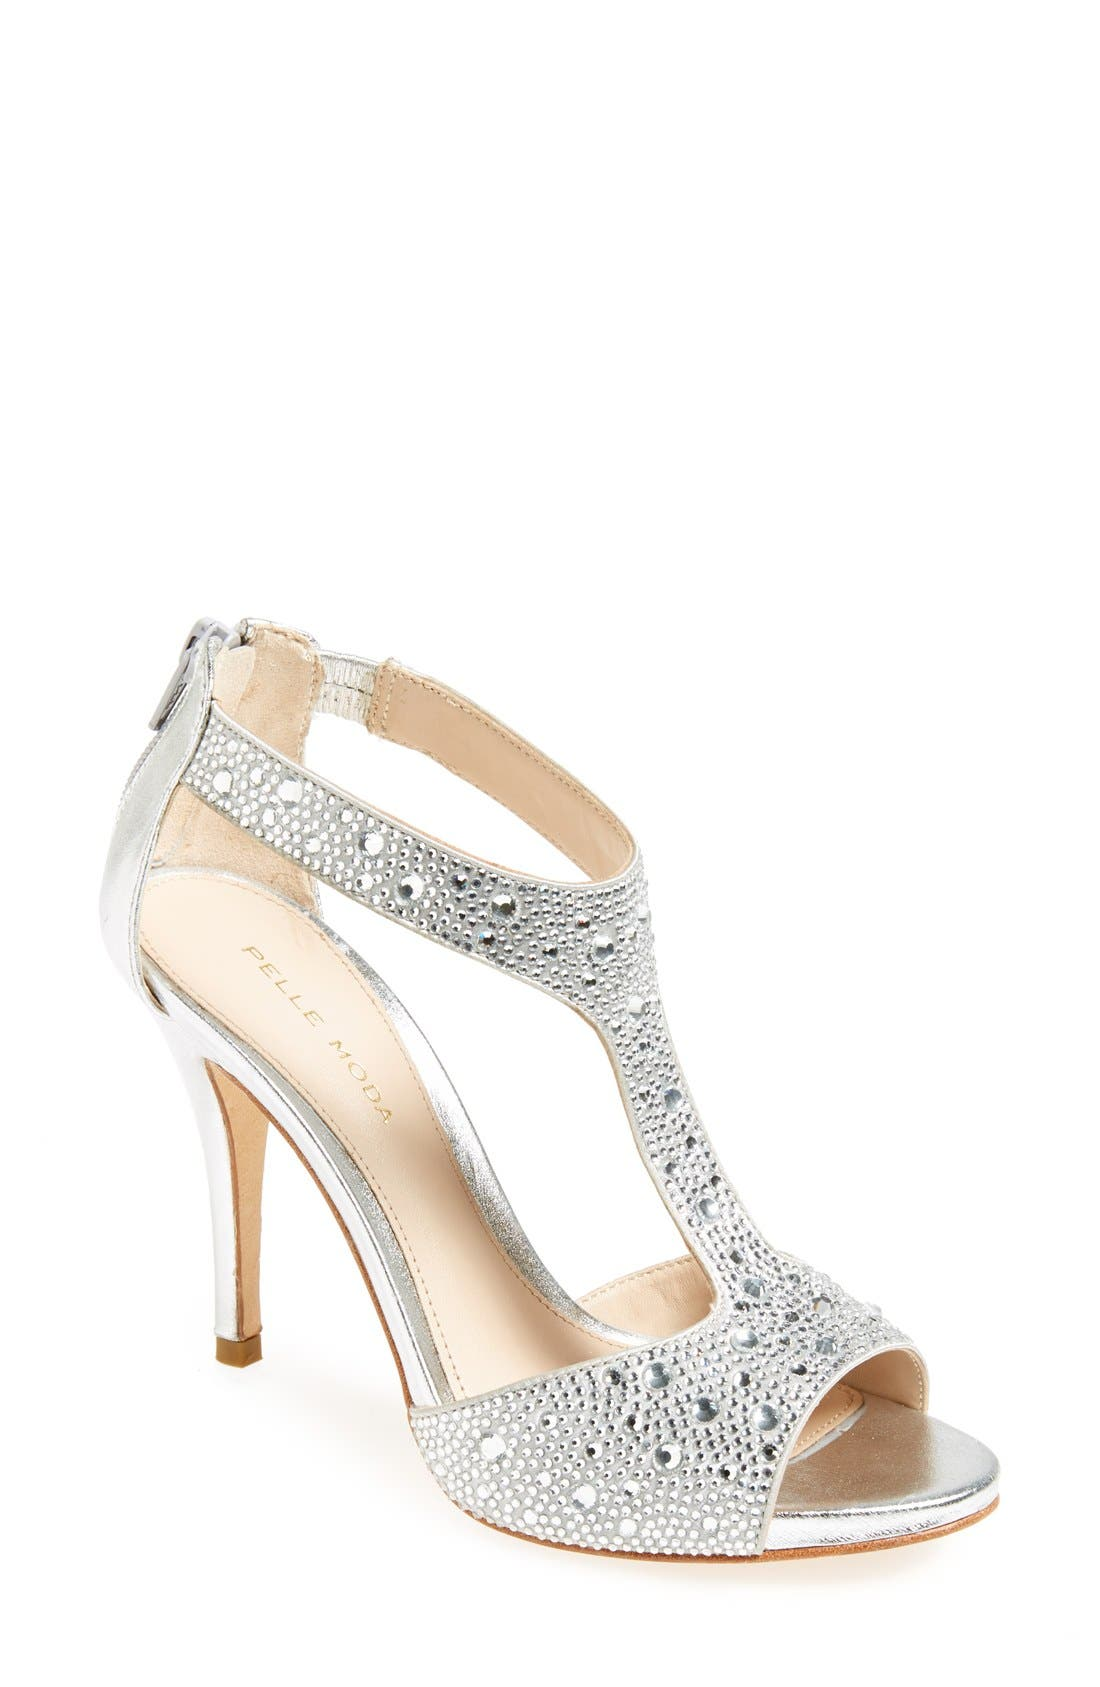 Alternate Image 1 Selected - Pelle Moda 'Jett' Embellished T Strap Sandal (Women)